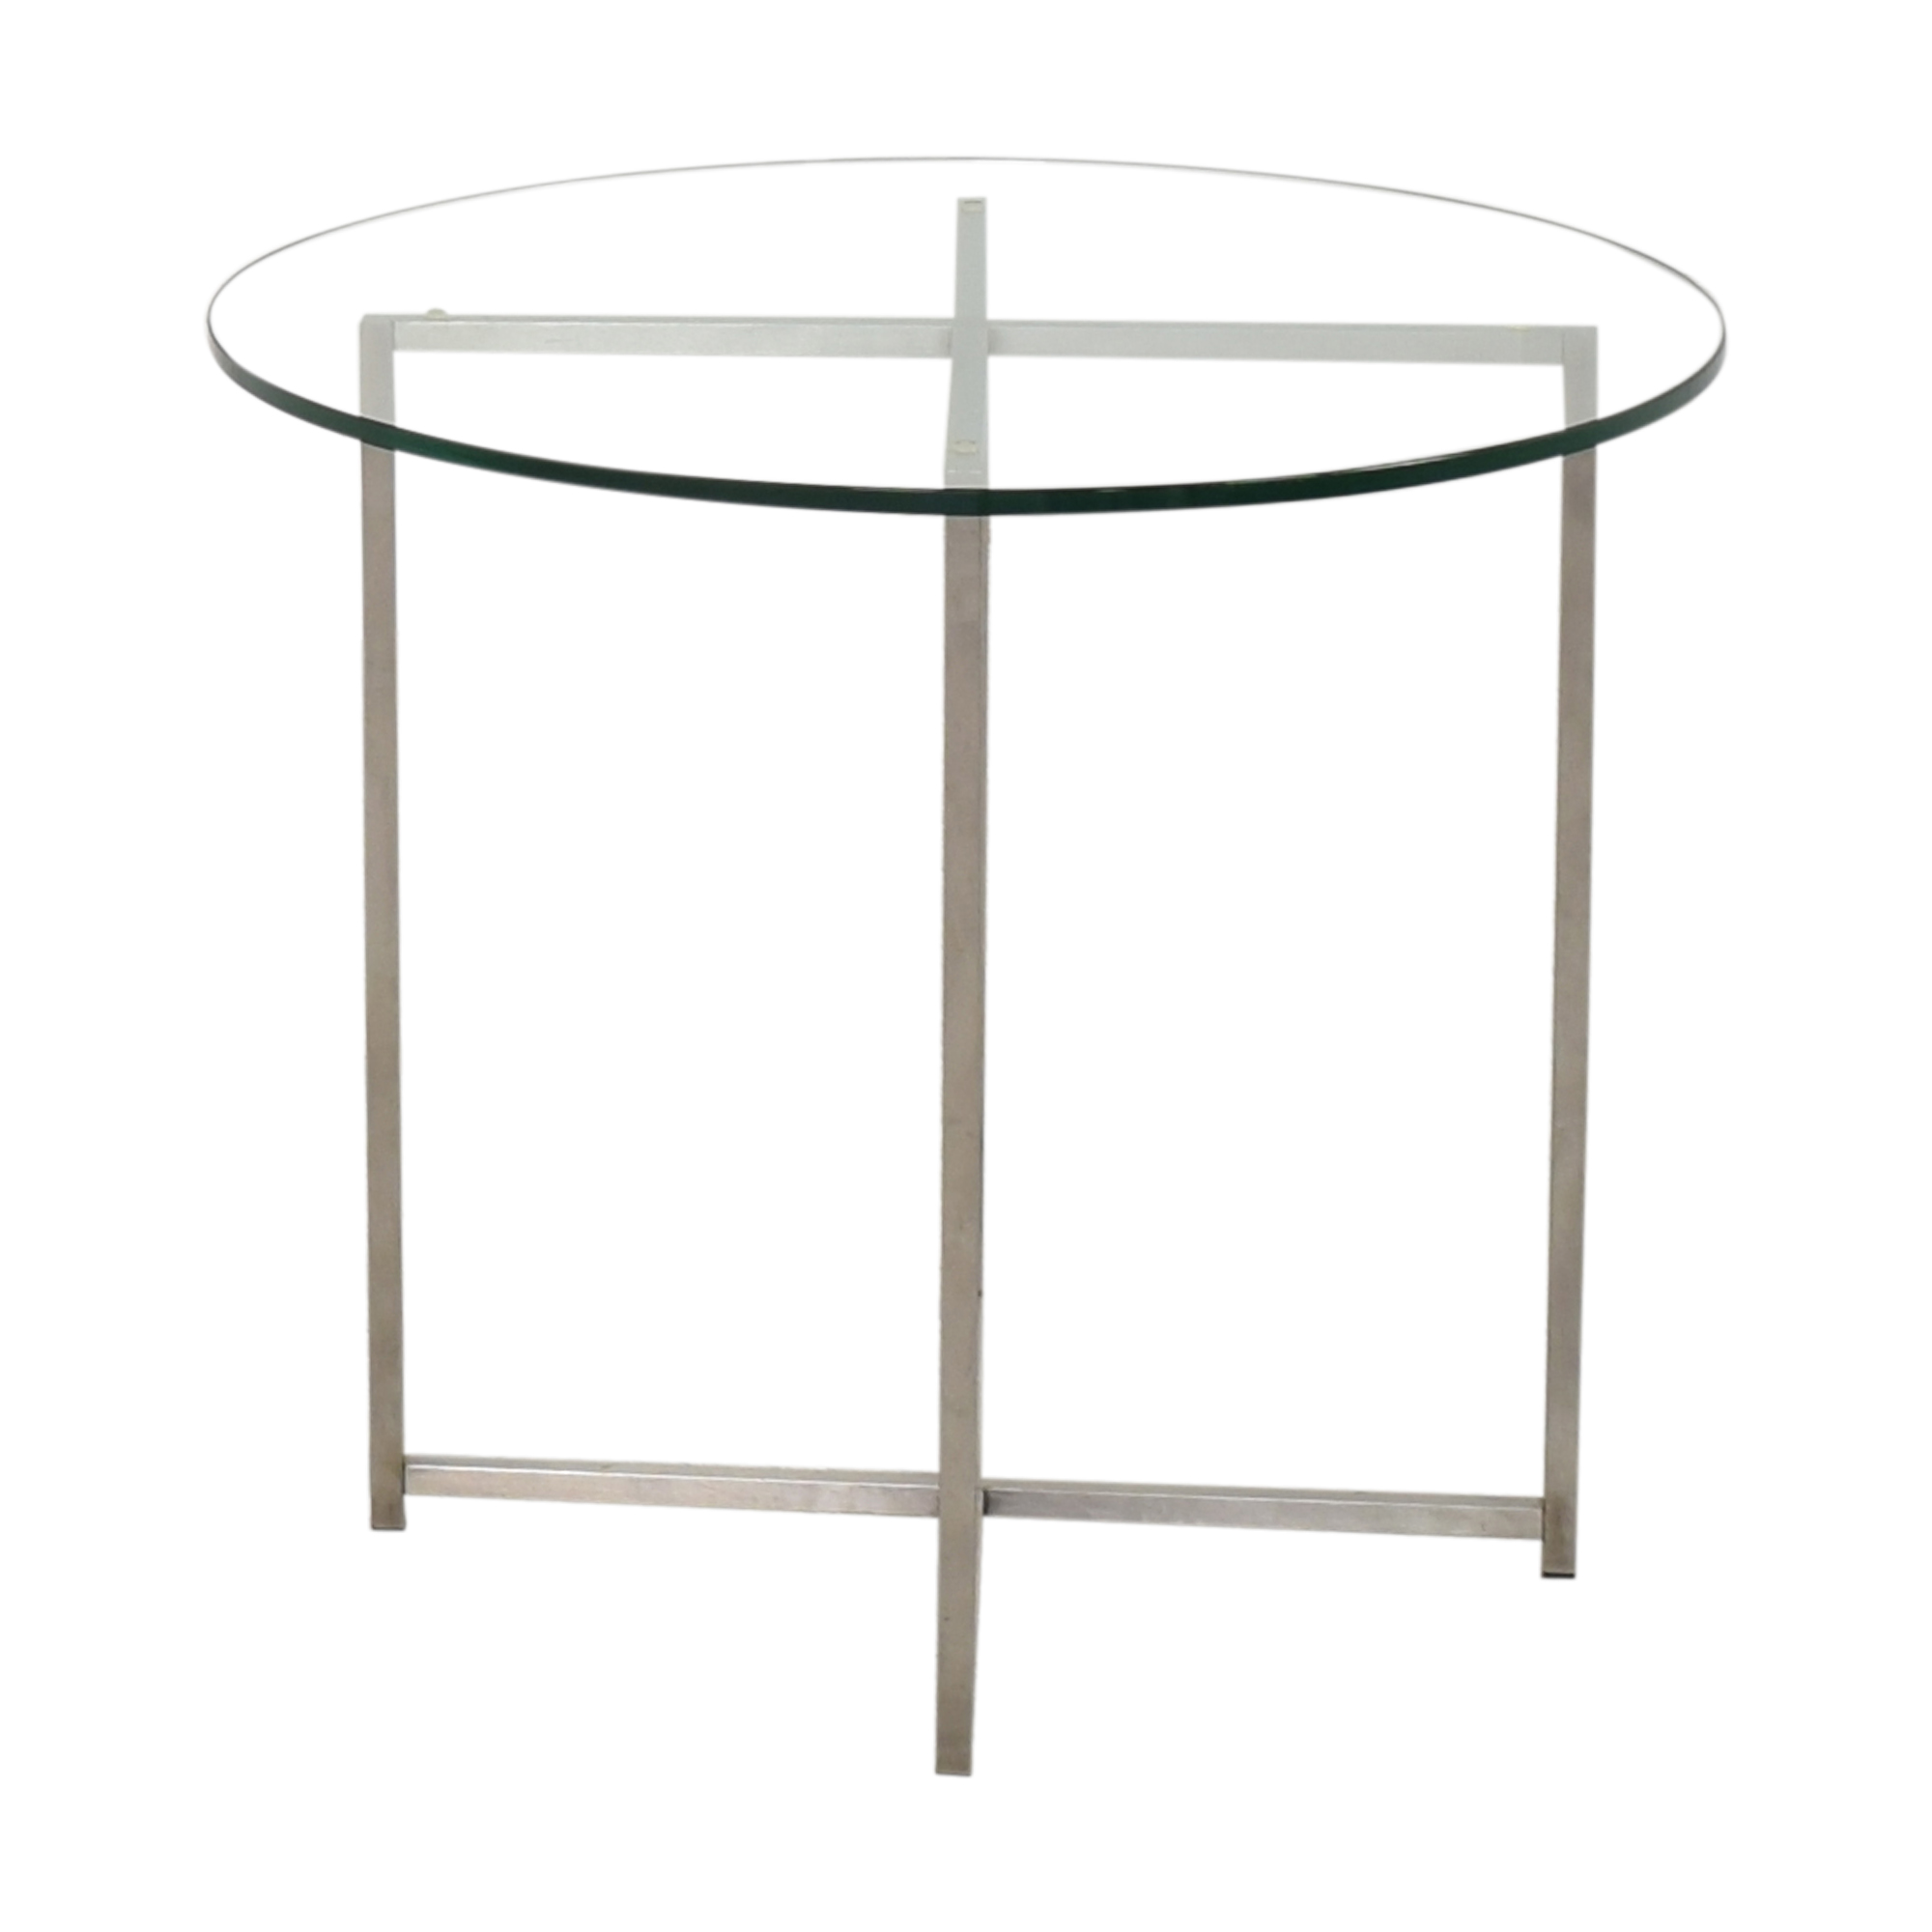 Room & Board Room & Board Classic End Table End Tables